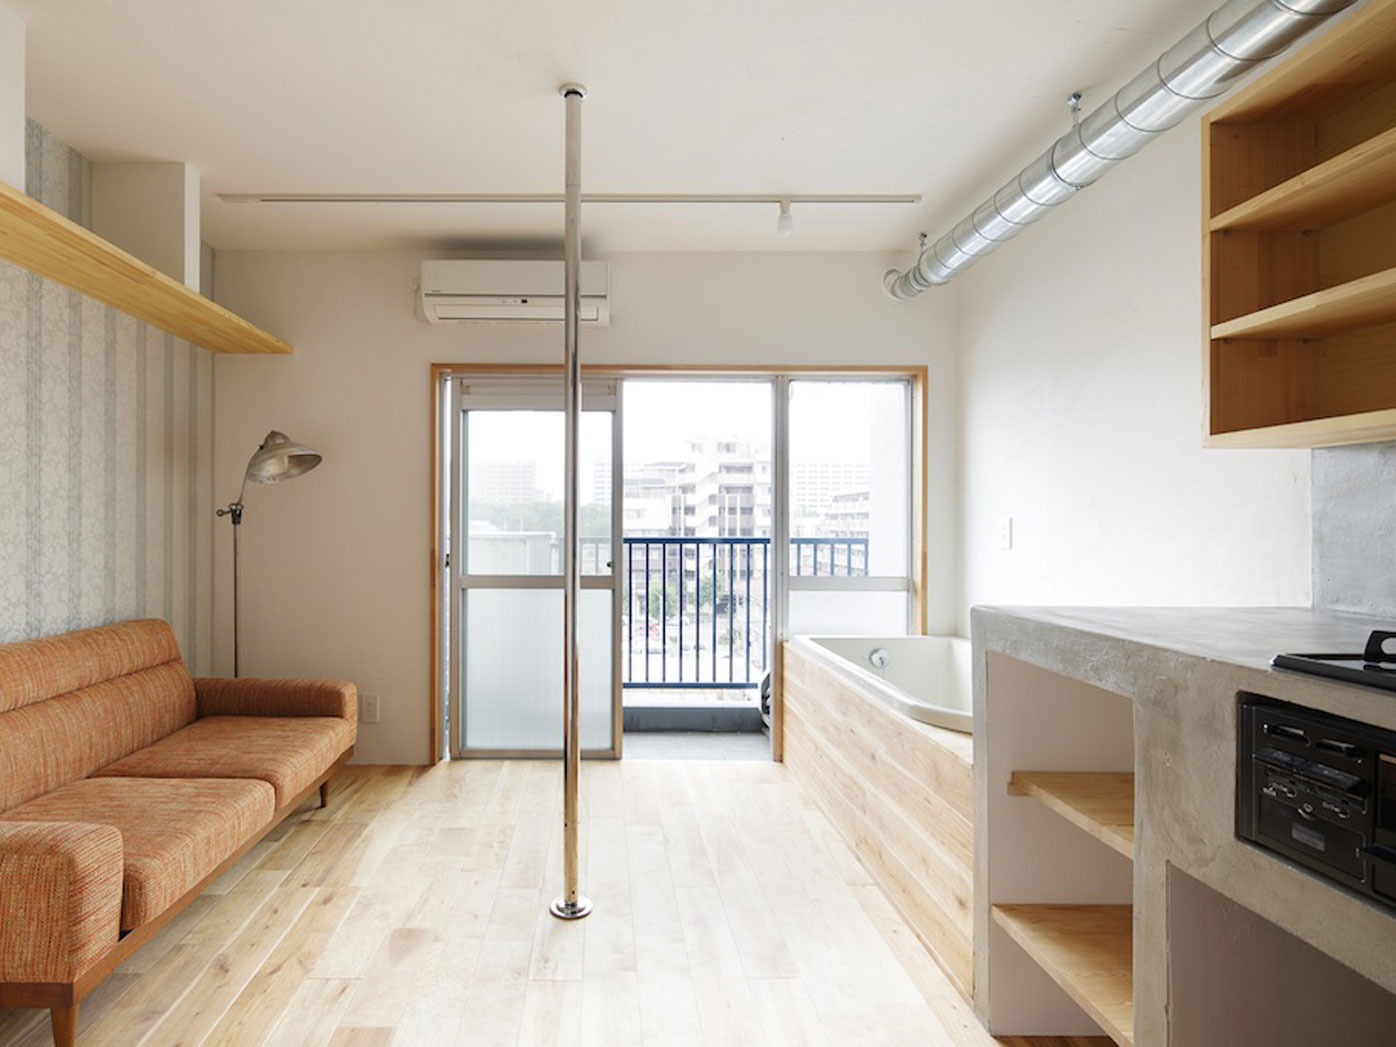 Japan's 'marriage-hunting' apartments